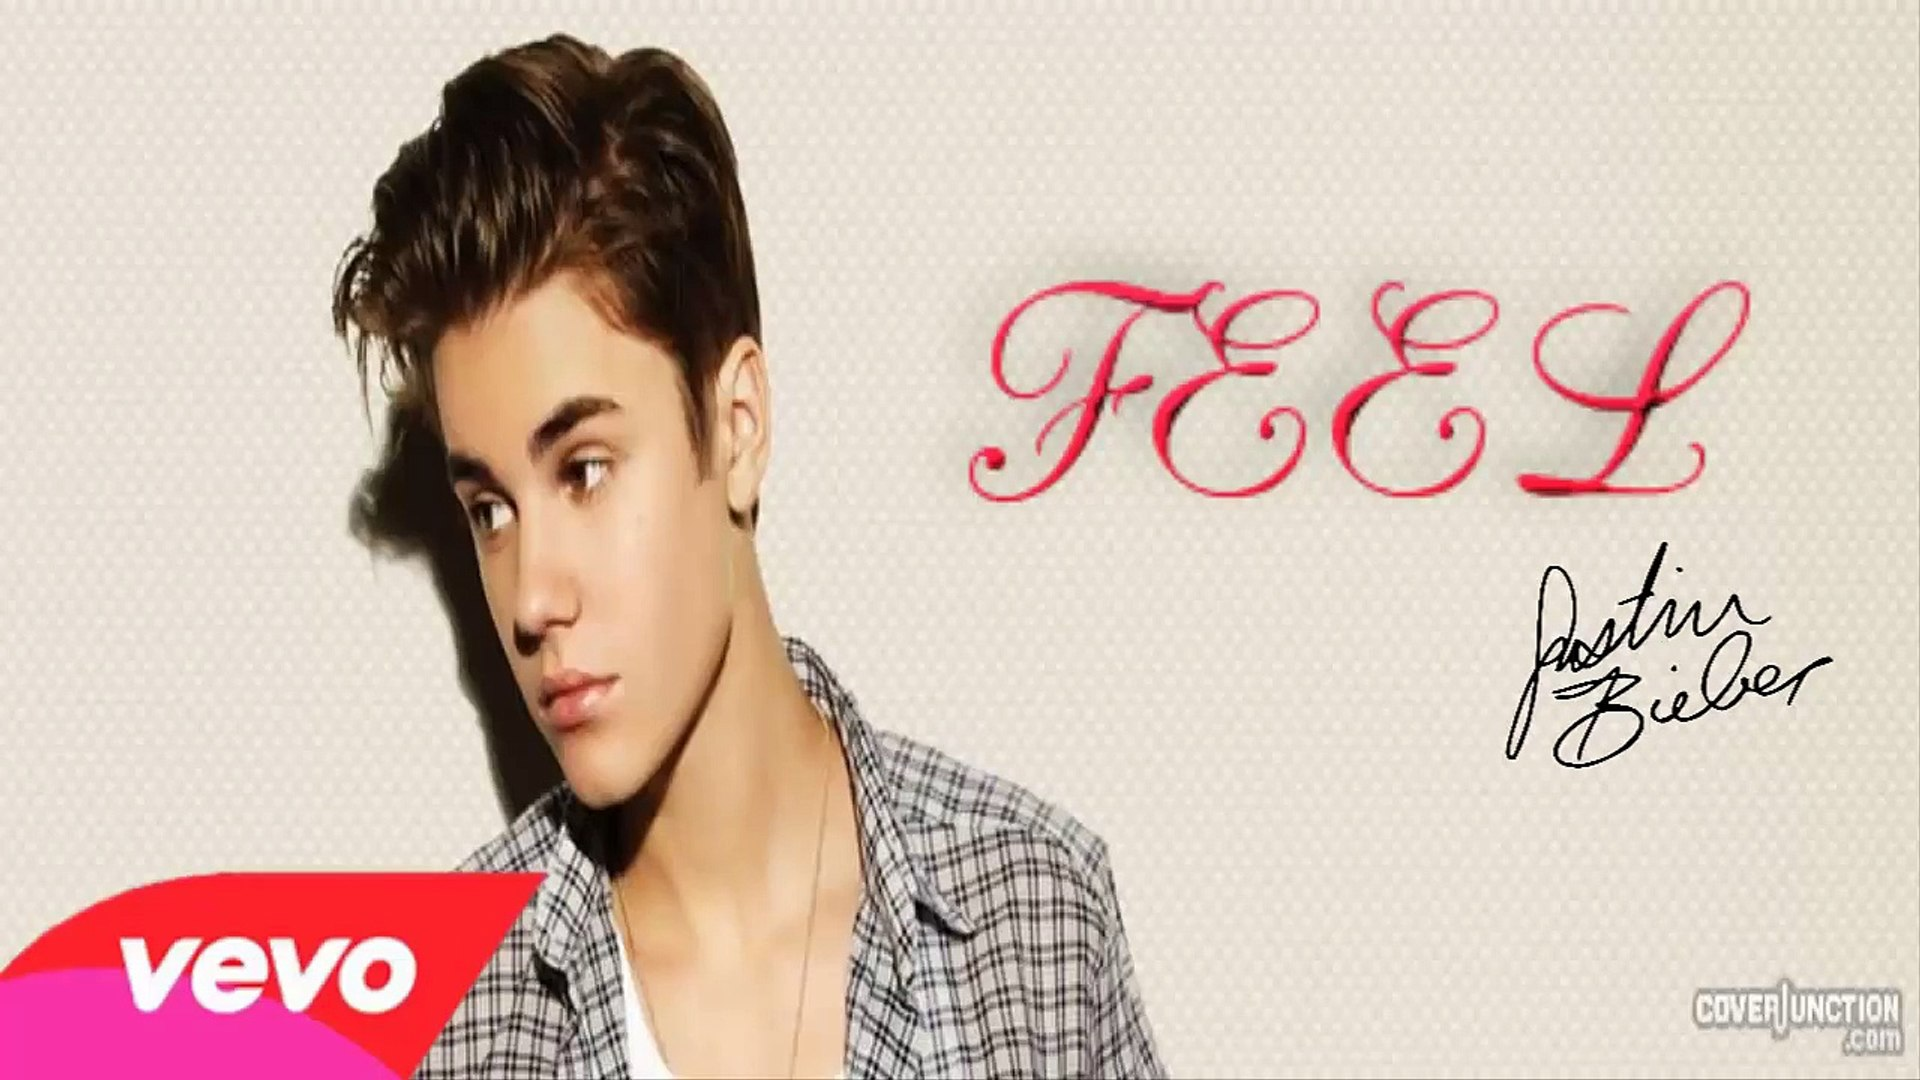 Justin Bieber New Song 2015 - FEEL [Official Audio] - Justin Bieber 2015 - NEW SONG 2015